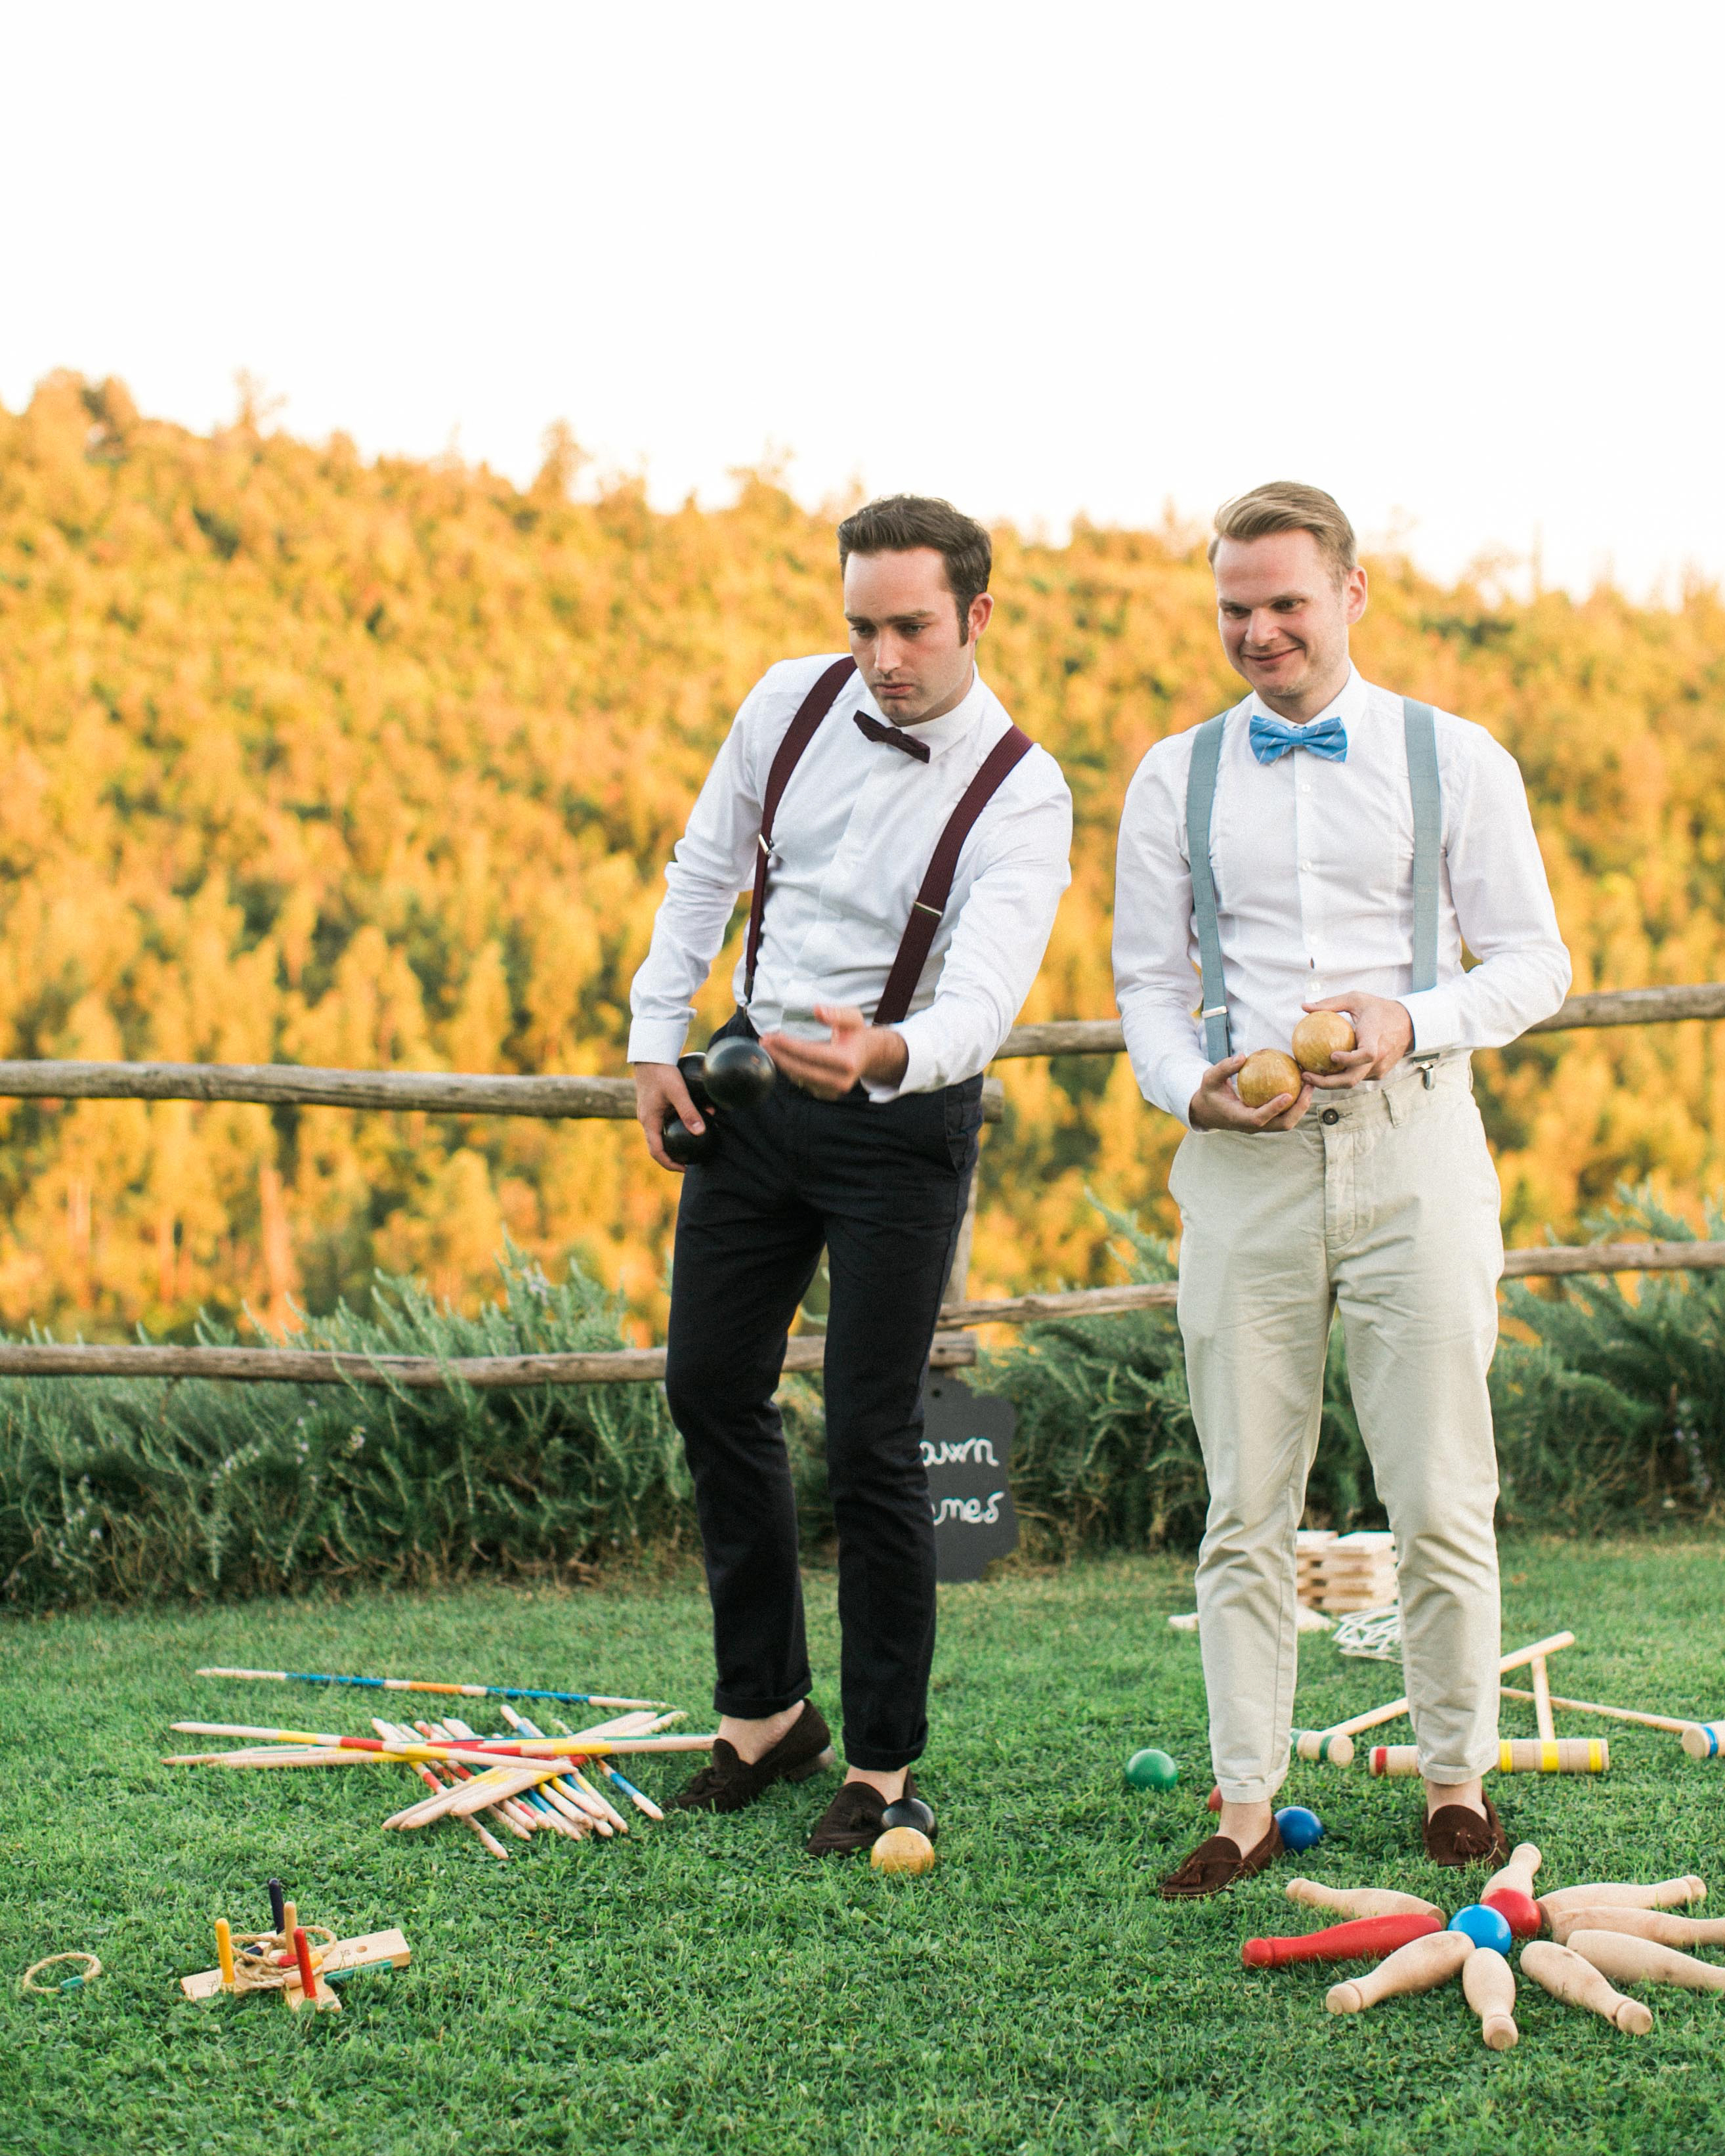 Ceremony And Reception Gap: Your Wedding Reception Etiquette Questions, Answered